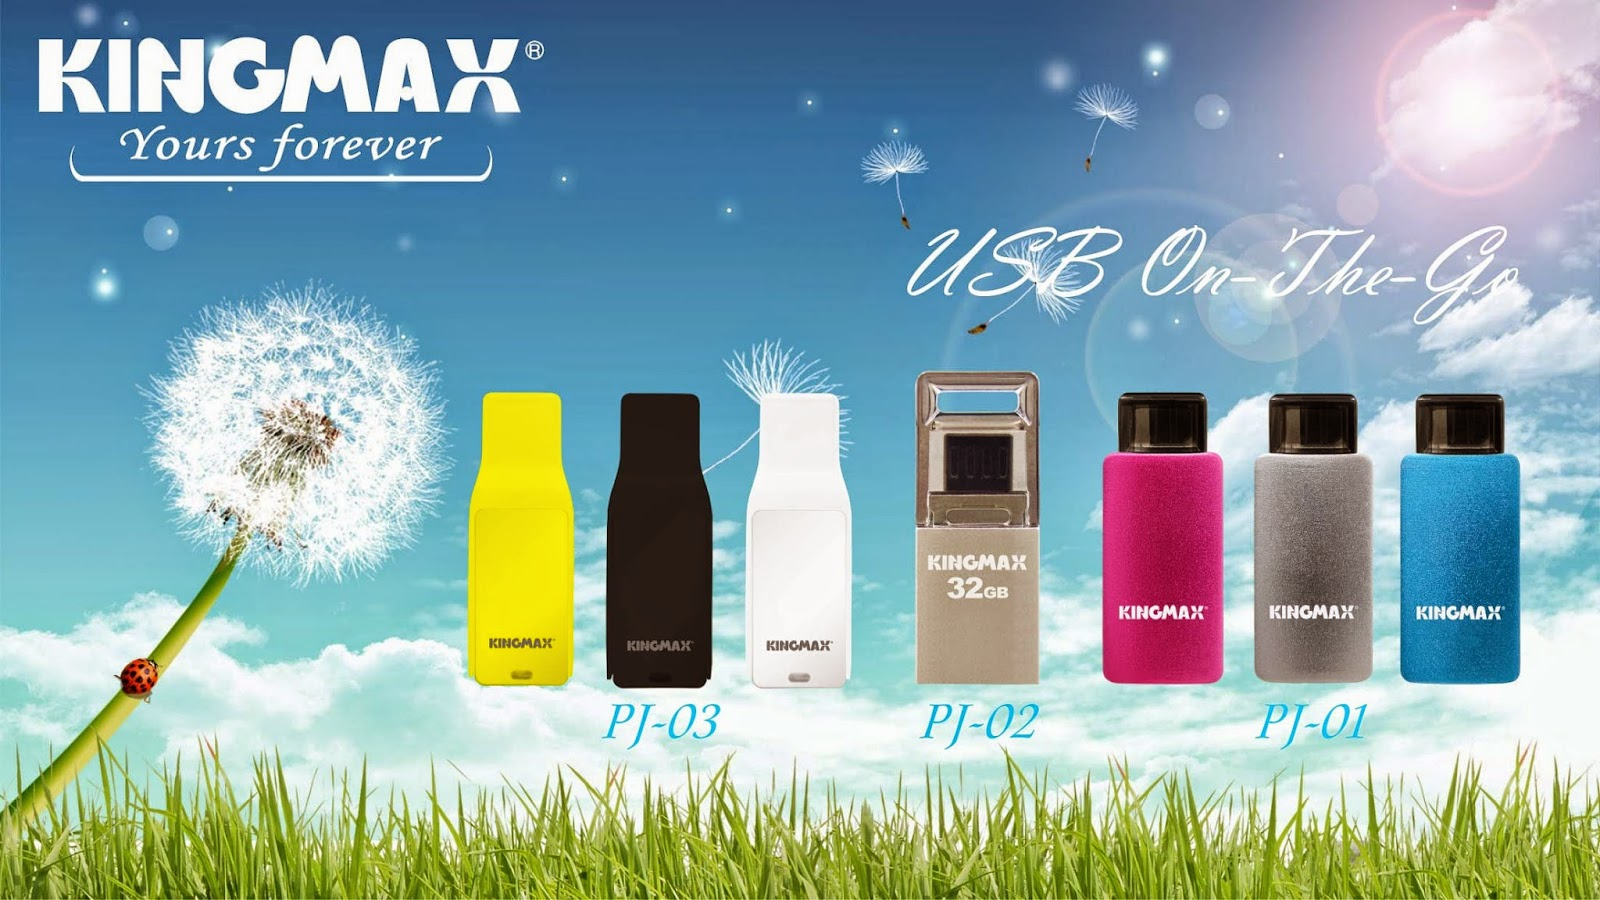 KINGMAX OTG USB Flash Drive series